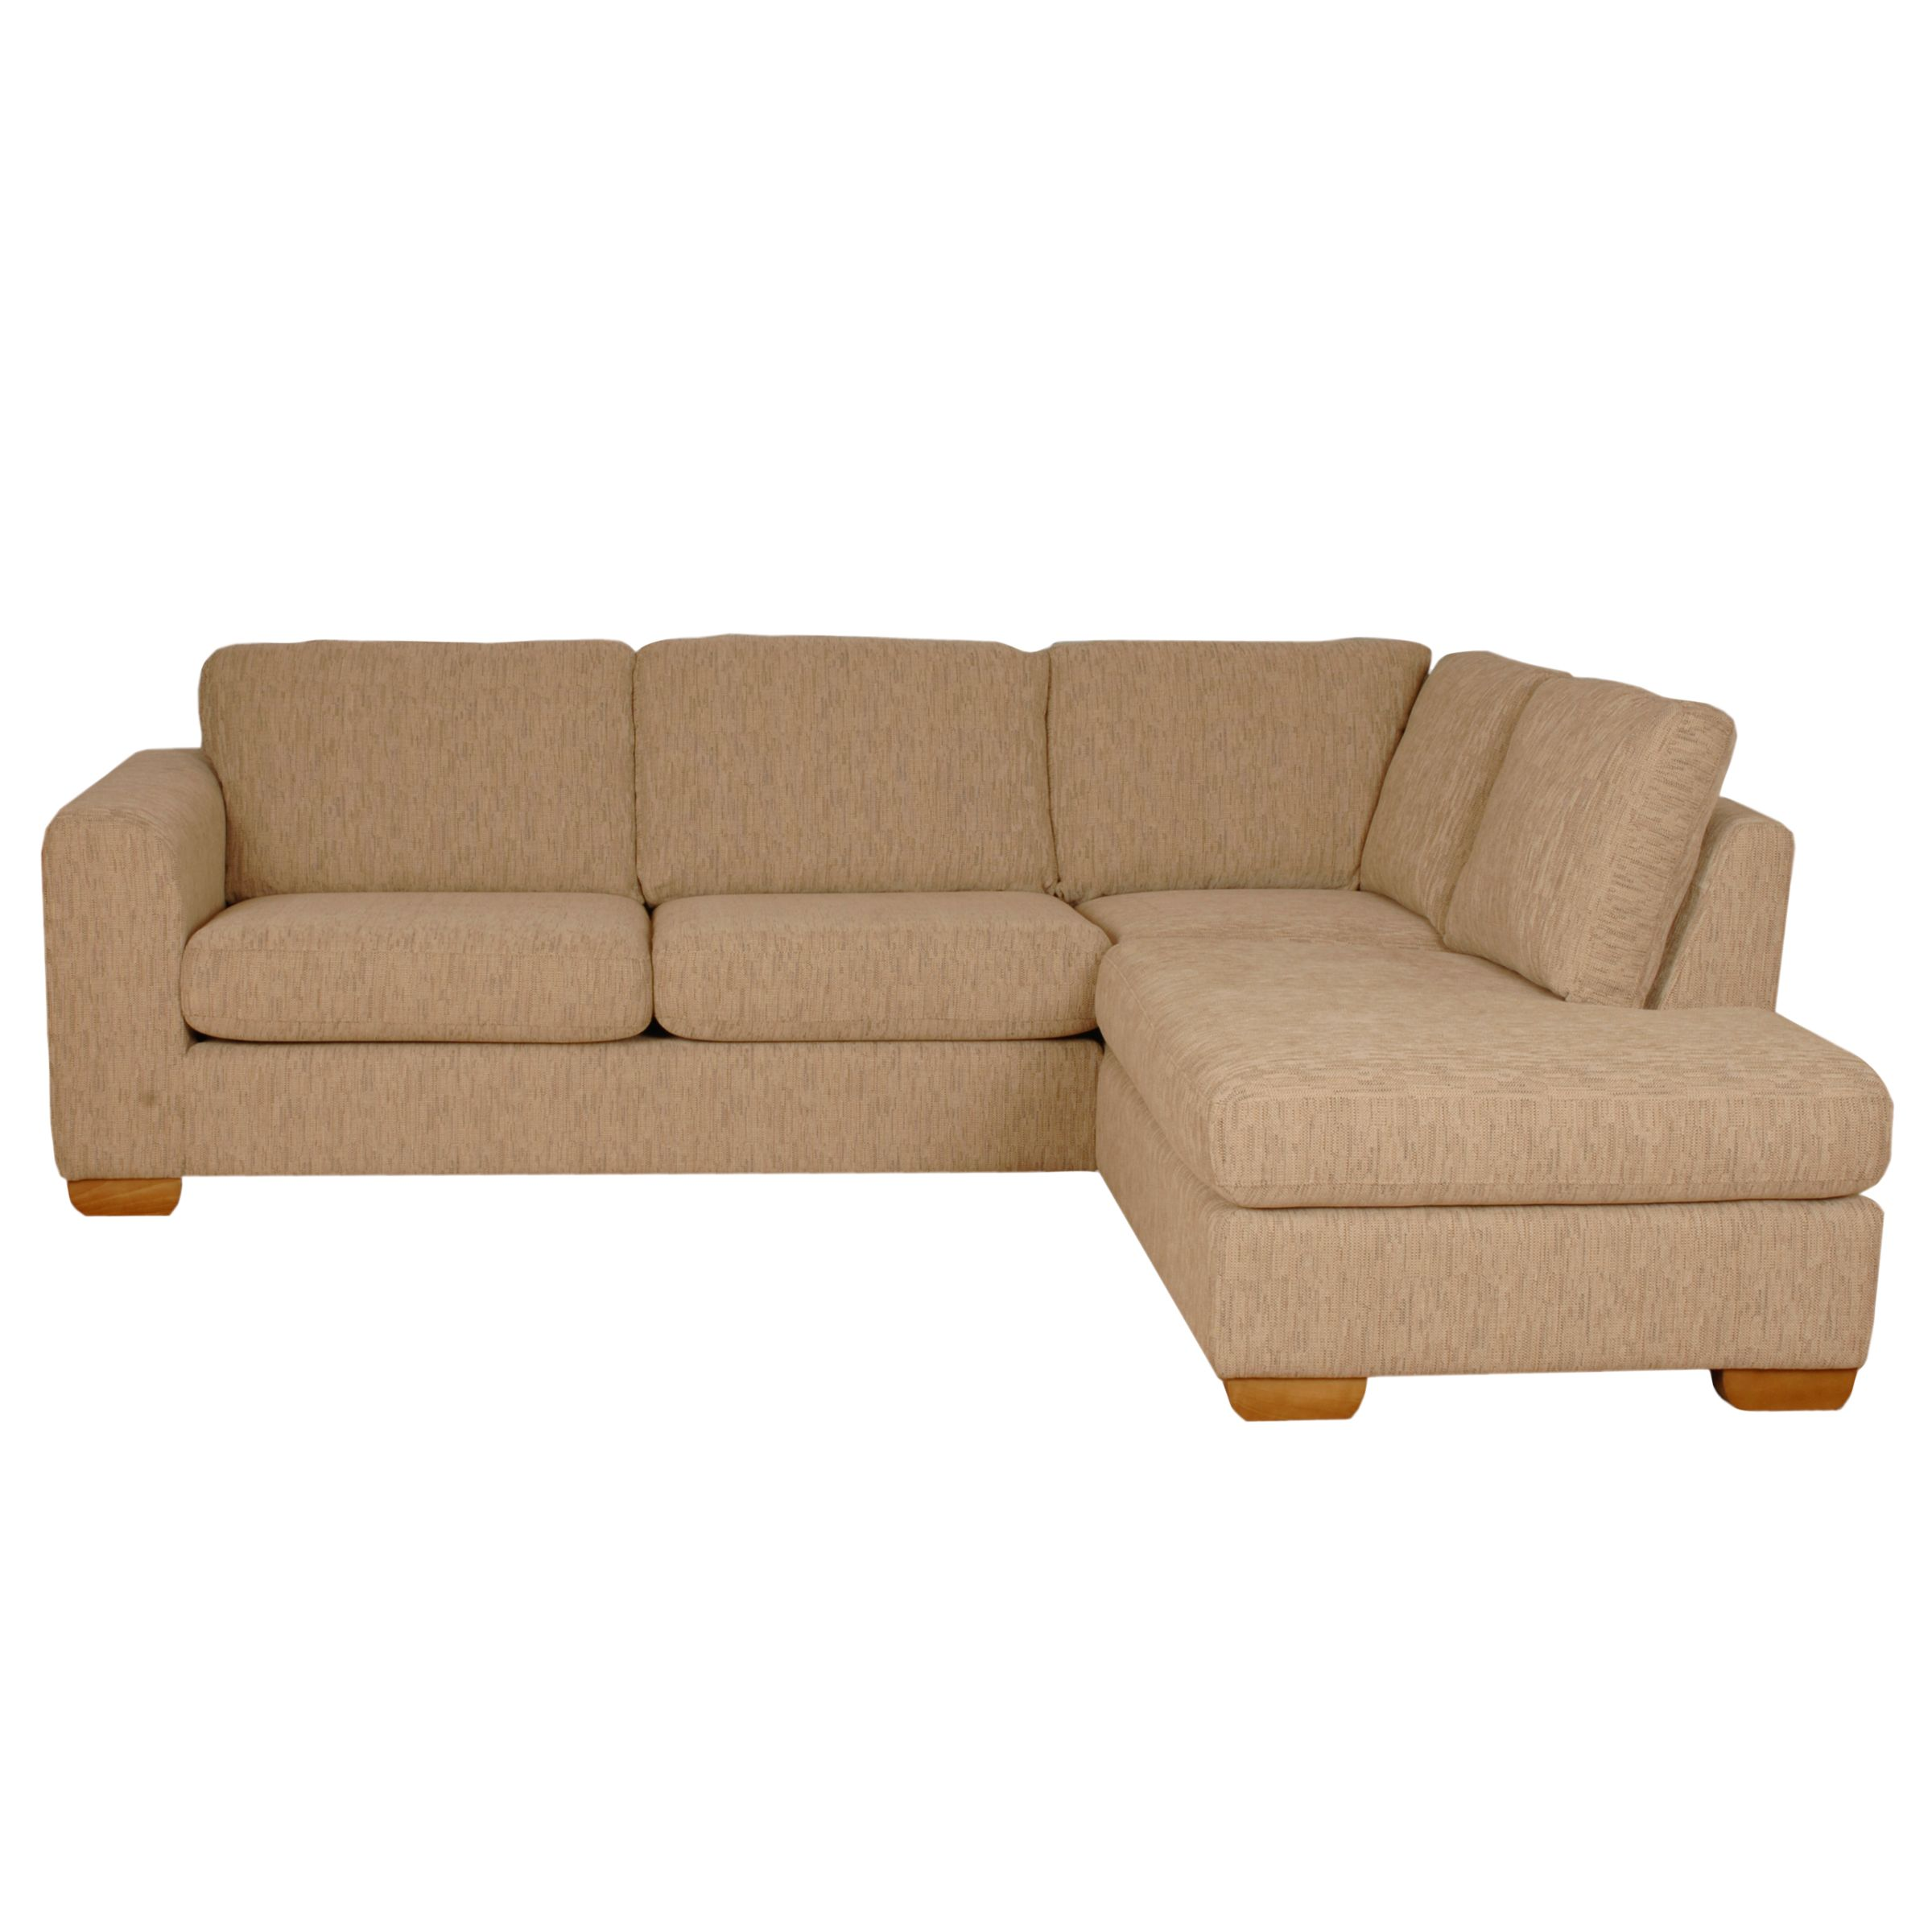 John Lewis Cooper Corner Sofa: John Lewis Leather Sofas. Buy John Lewis Bailey Medium 2